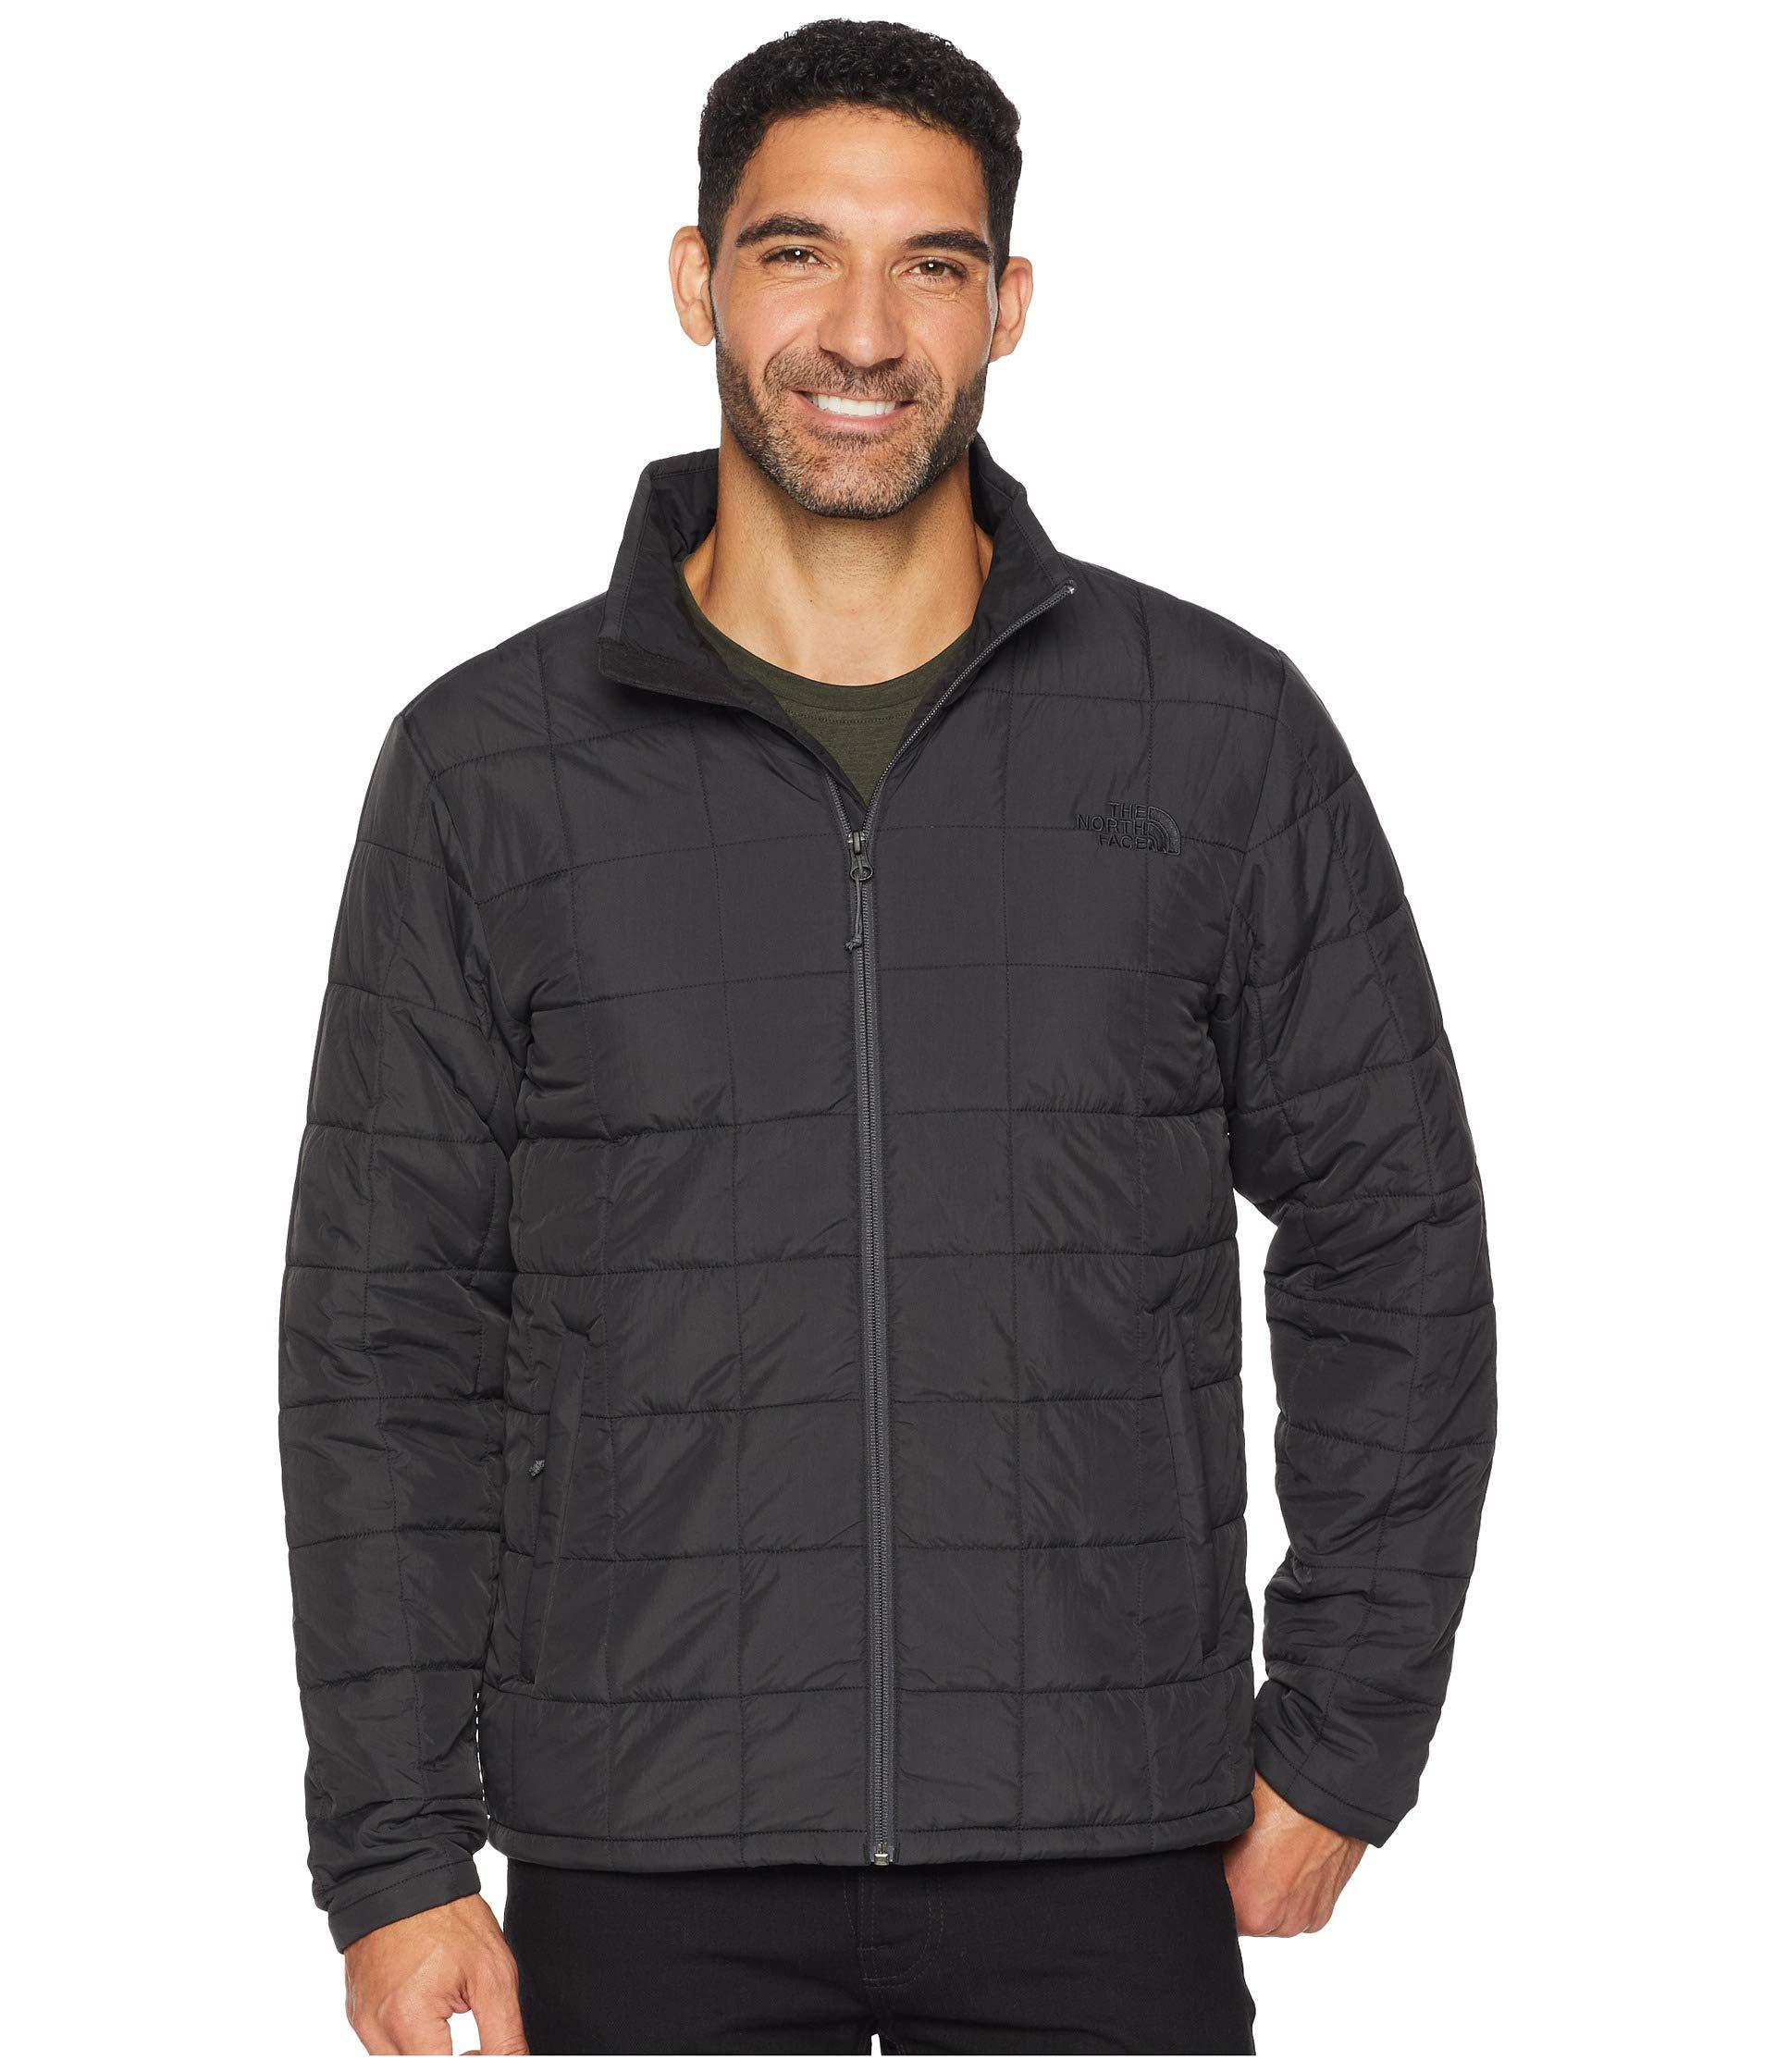 0a9b230ccc Lyst - The North Face Harway Jacket (shady Blue) Men s Coat in Gray ...